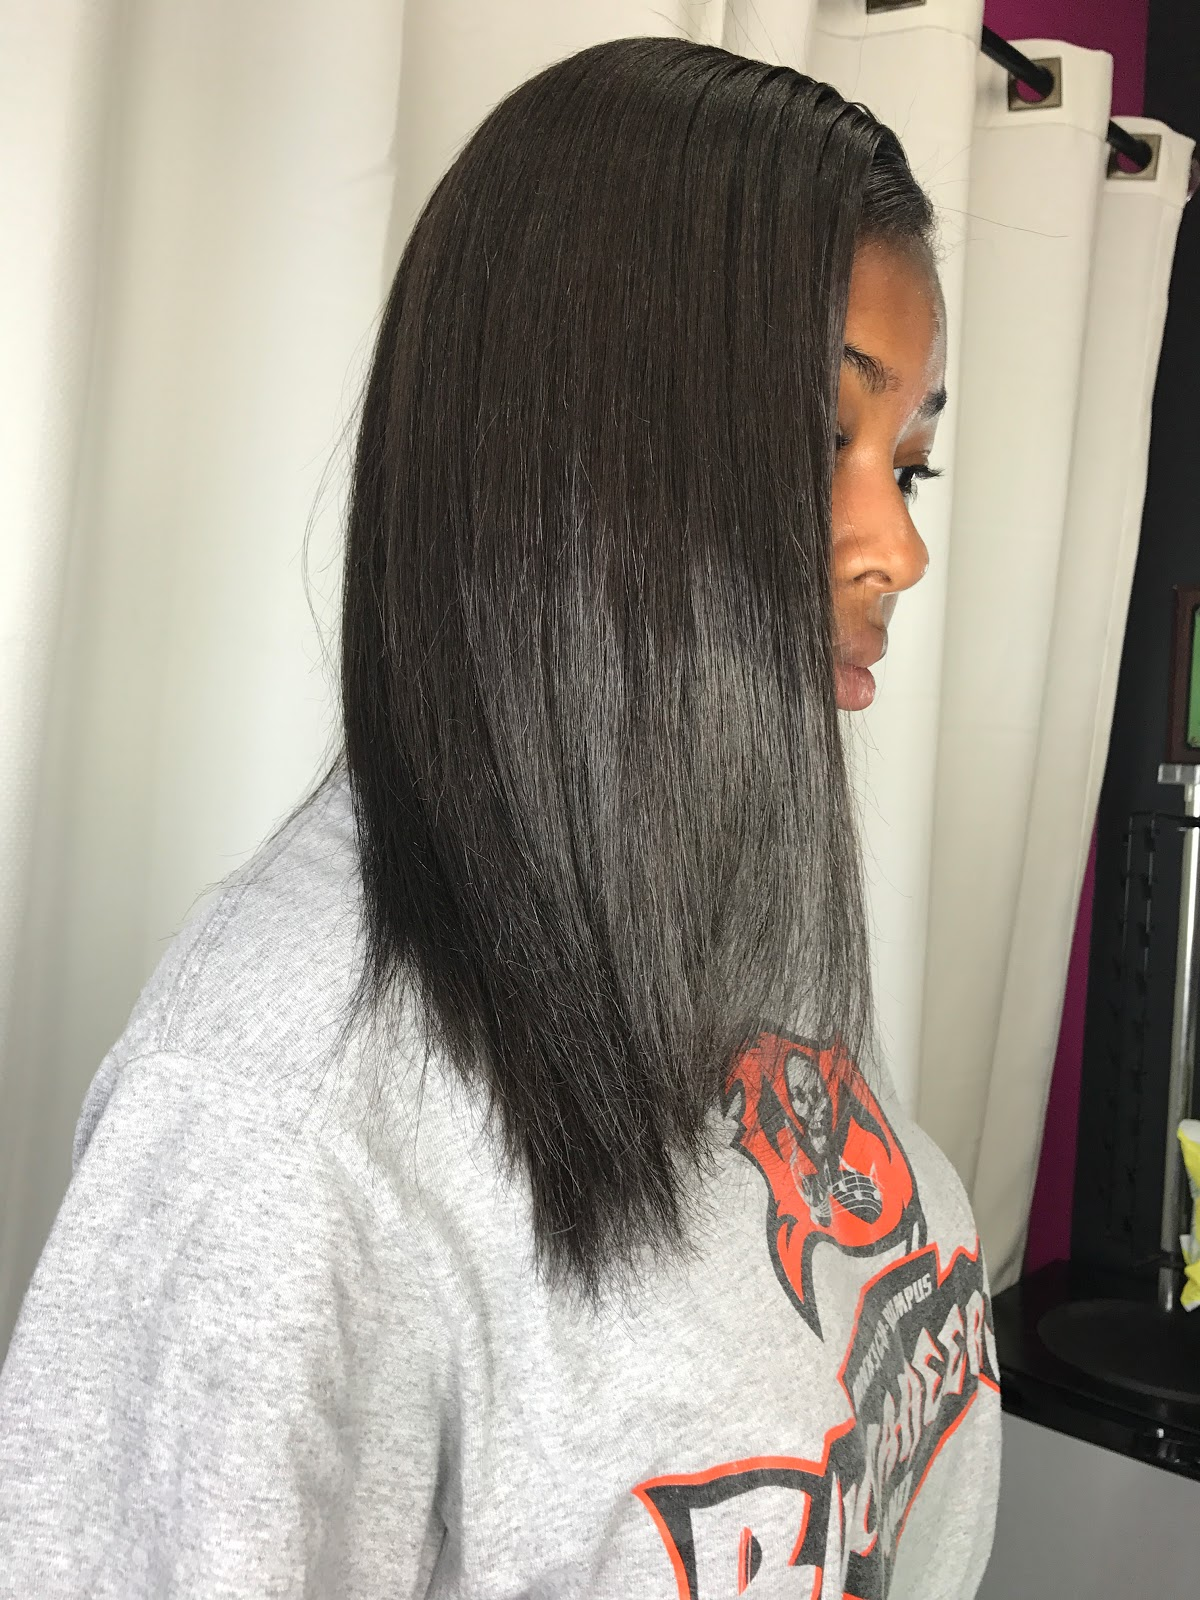 How to take care of your relaxed hair widescreen black hair androids full hd pics in easy steps latoya jones